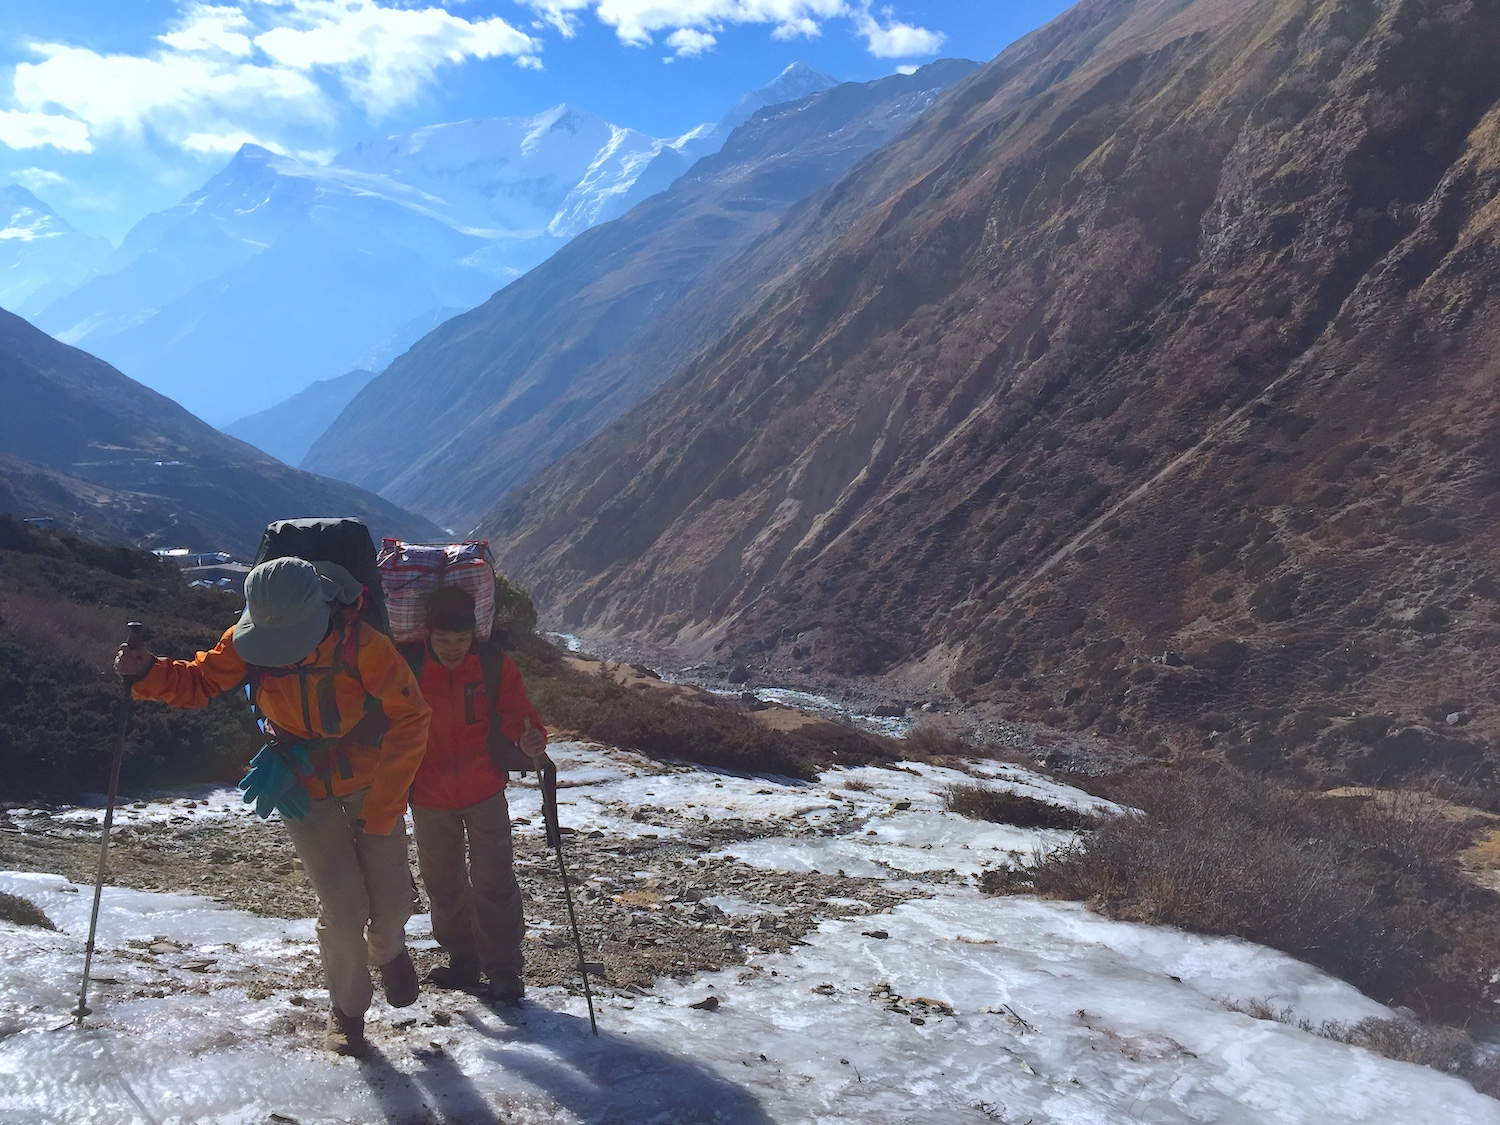 My darling daughter Bella treading very carefully over an icy path along the Annapurna circuit in Nepal. Once step at a time, one day at a time, one breath at a time.